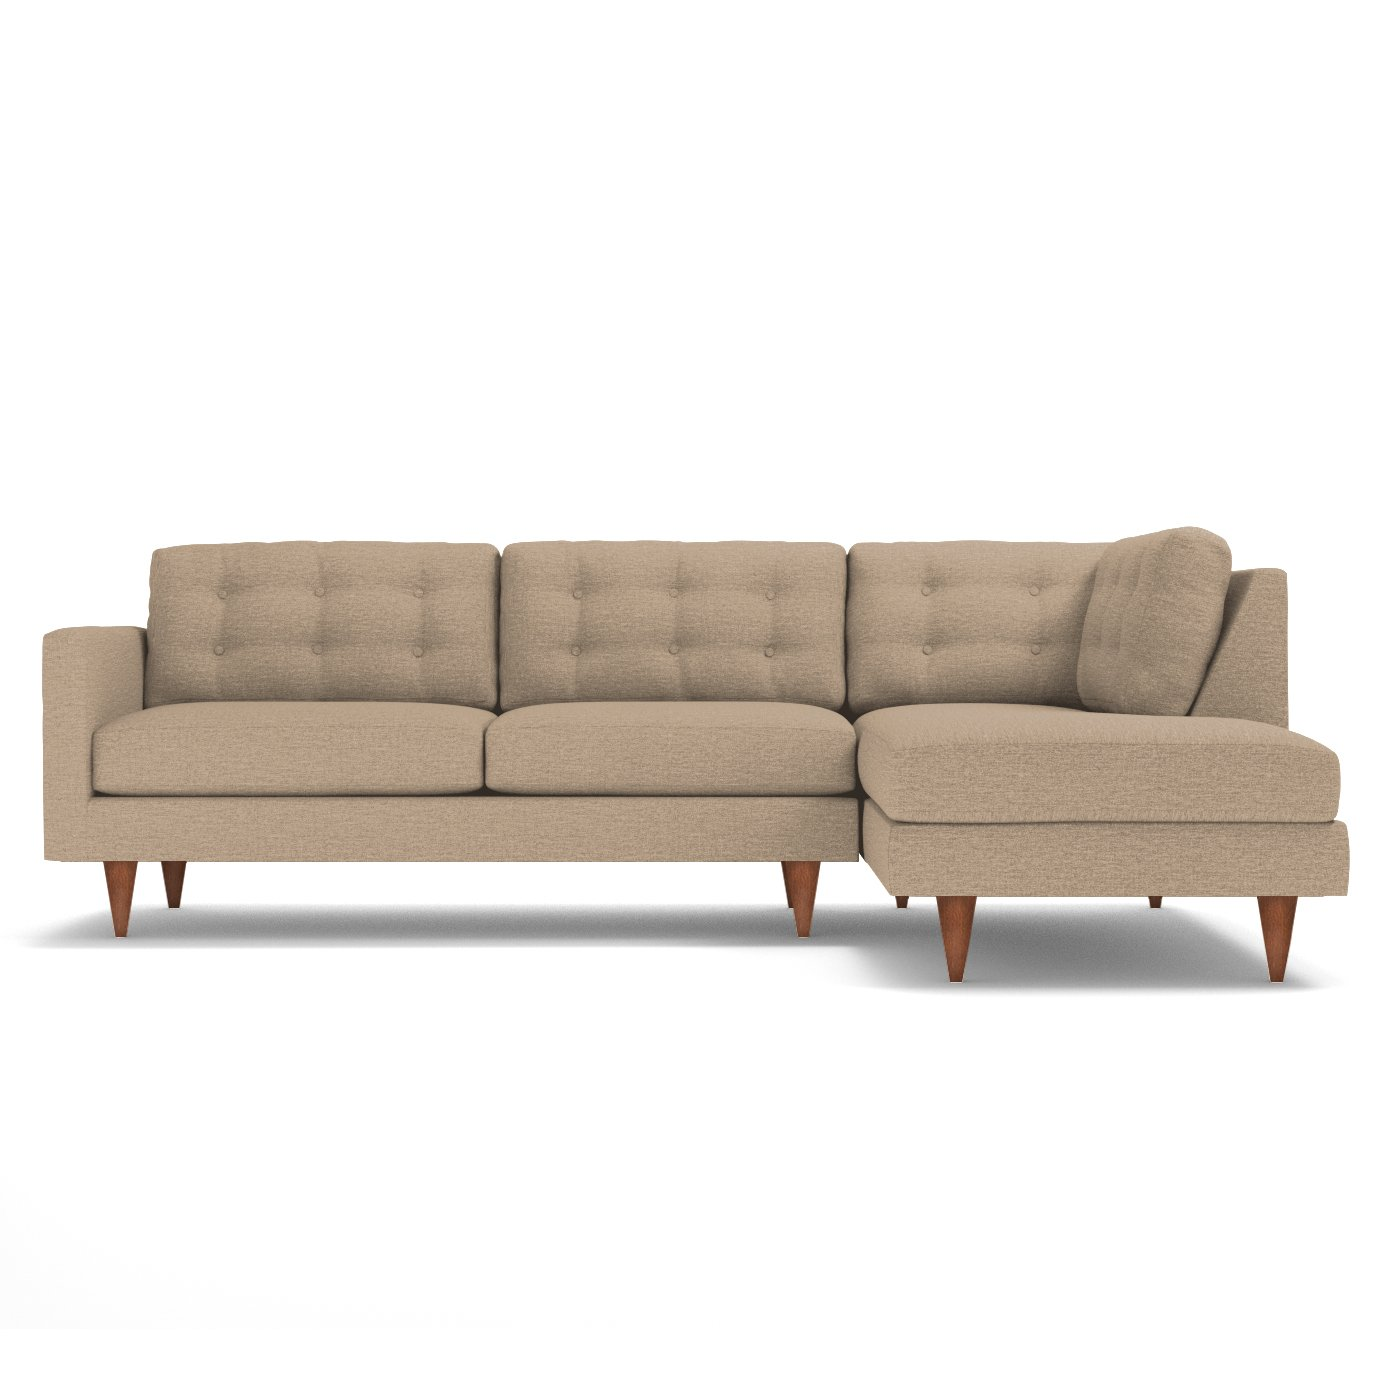 Logan 2 Piece Sectional Sofa Choice of Fabrics Apt2B